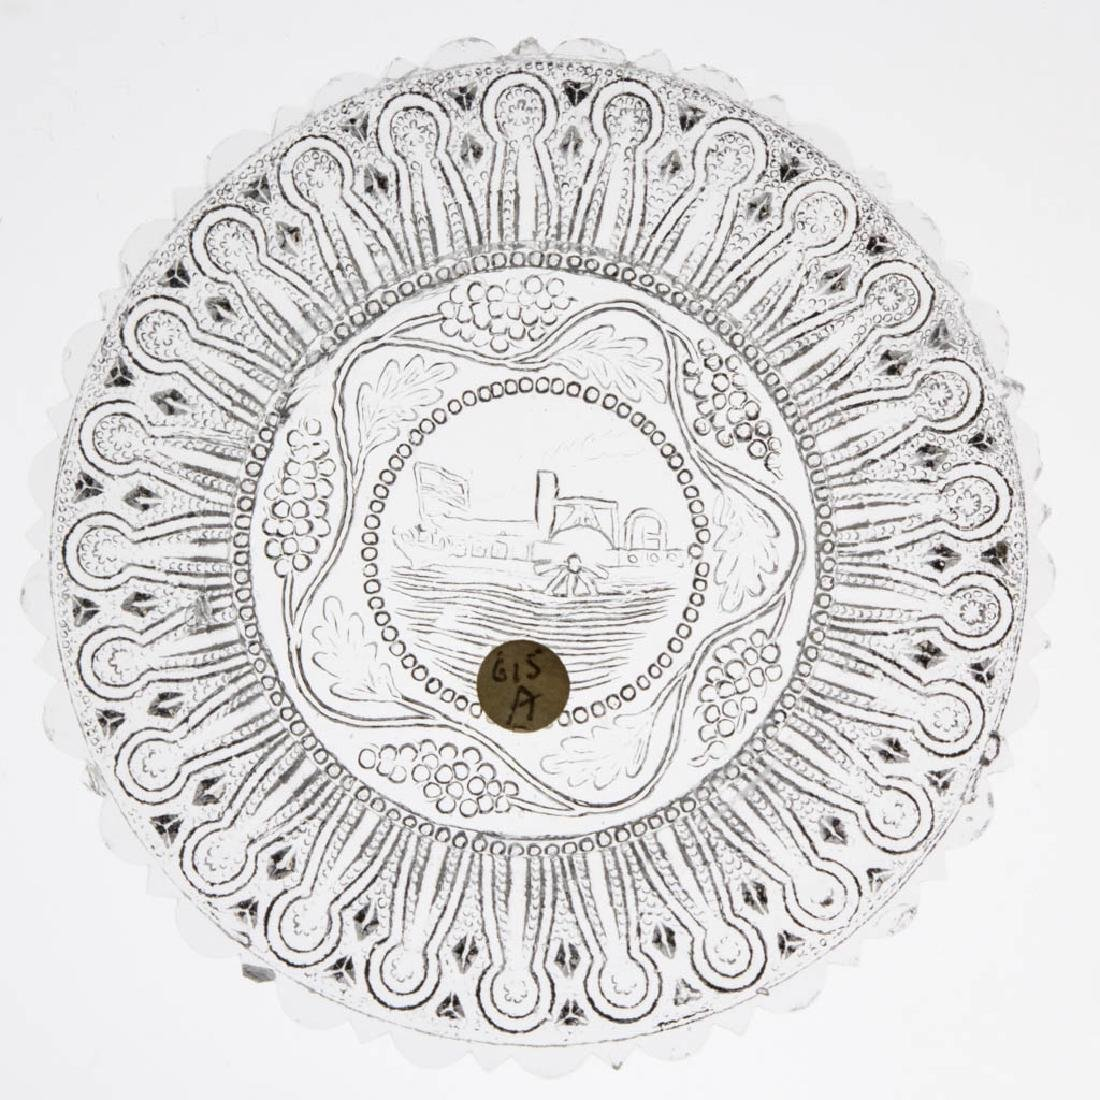 LEE/ROSE NO. 615-A CUP PLATE